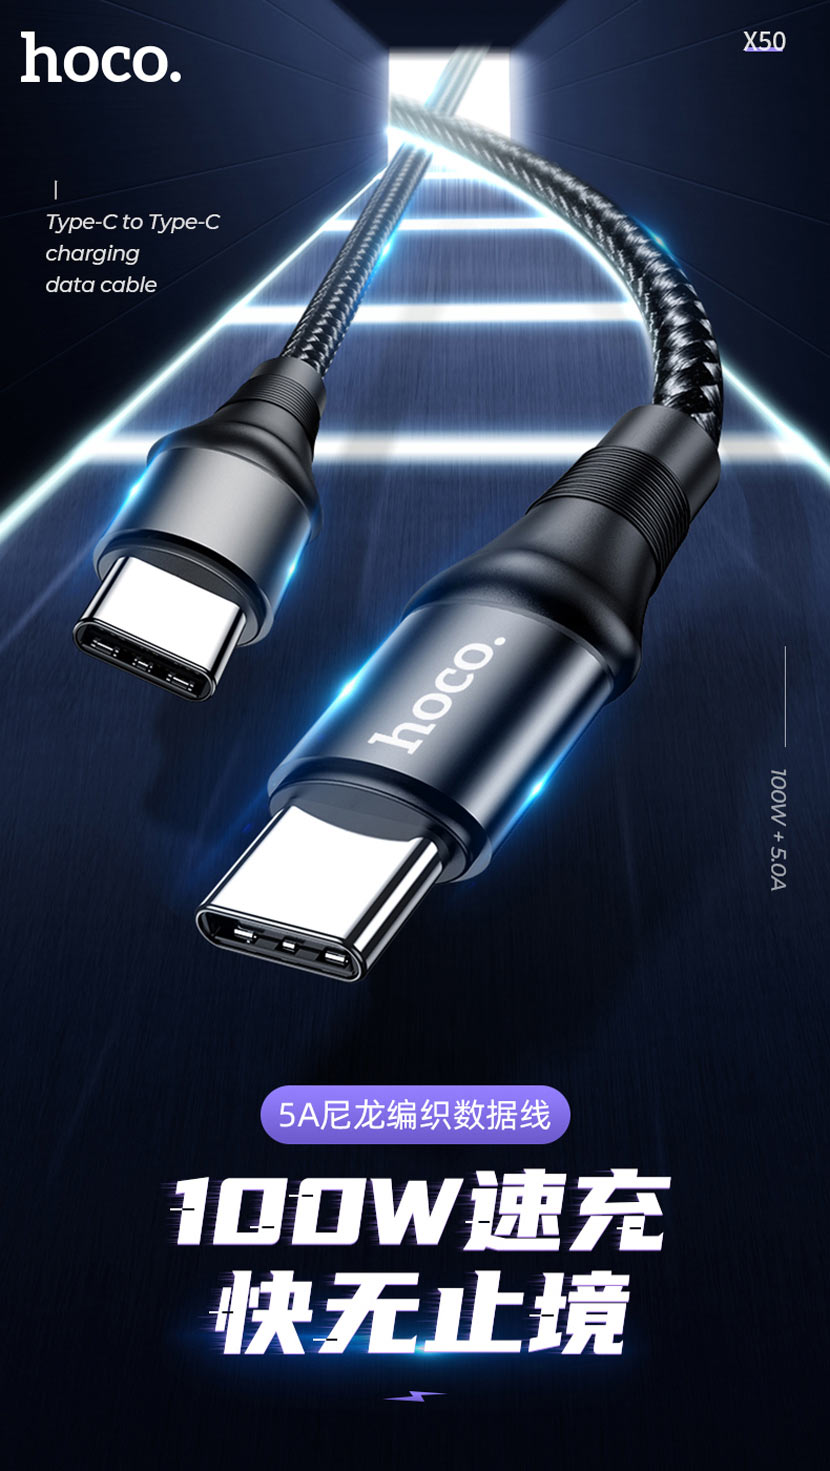 hoco news x50 exquisito charging data cable 100w cn